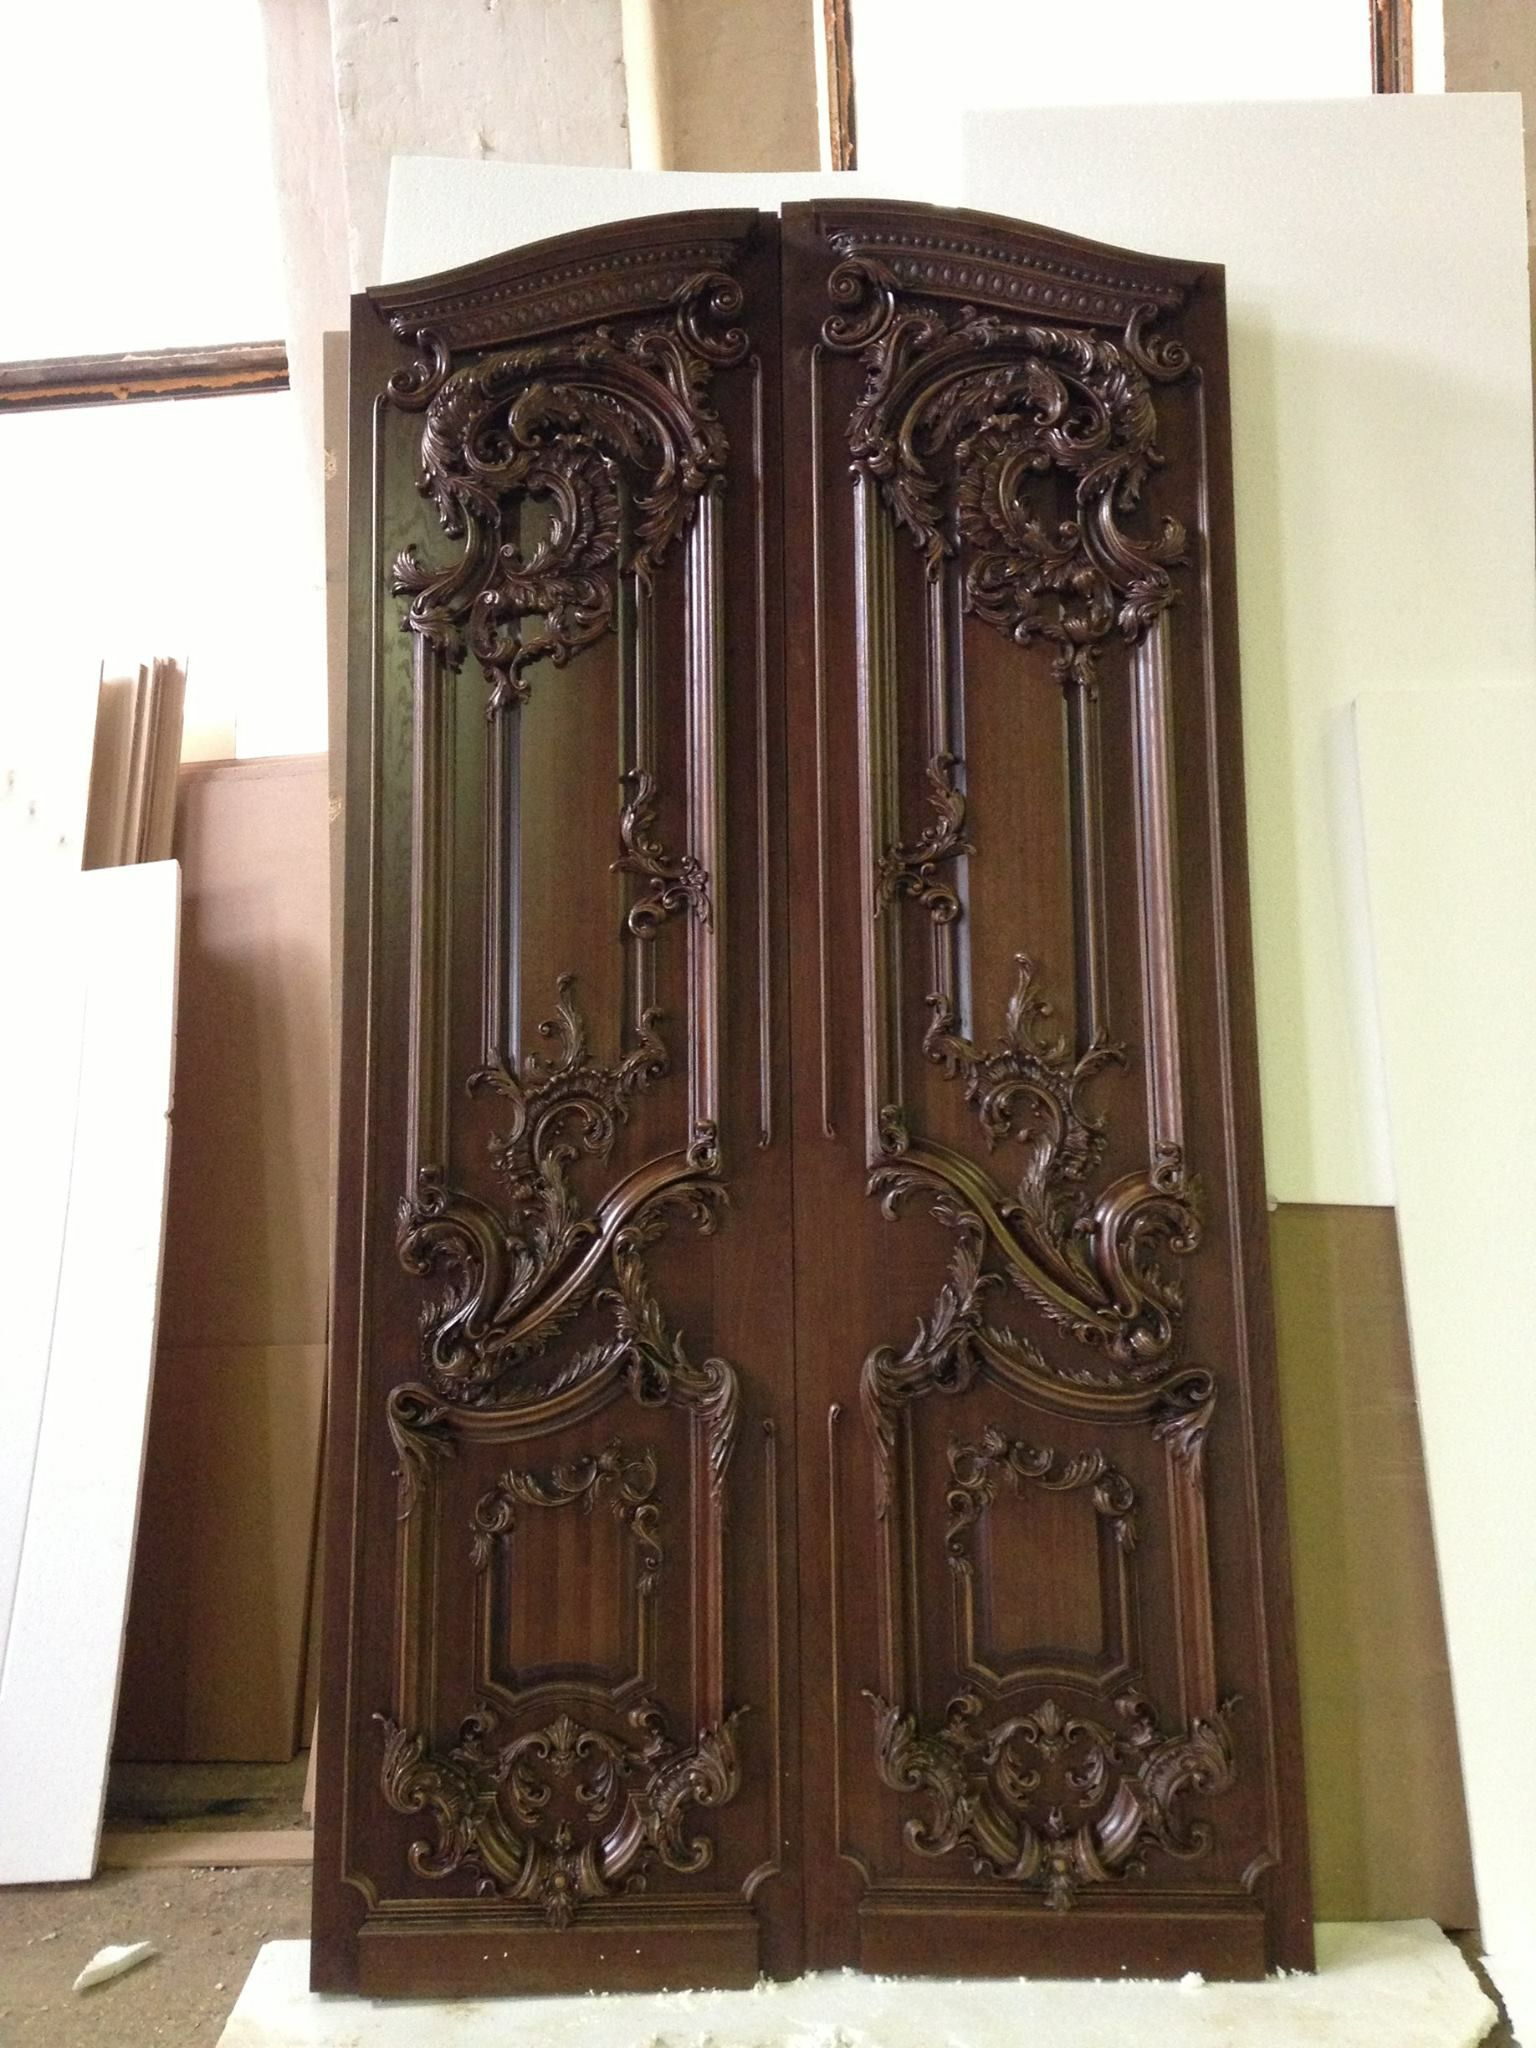 Wood carved front entrance door door ideas pinterest for Wood carving doors hd images